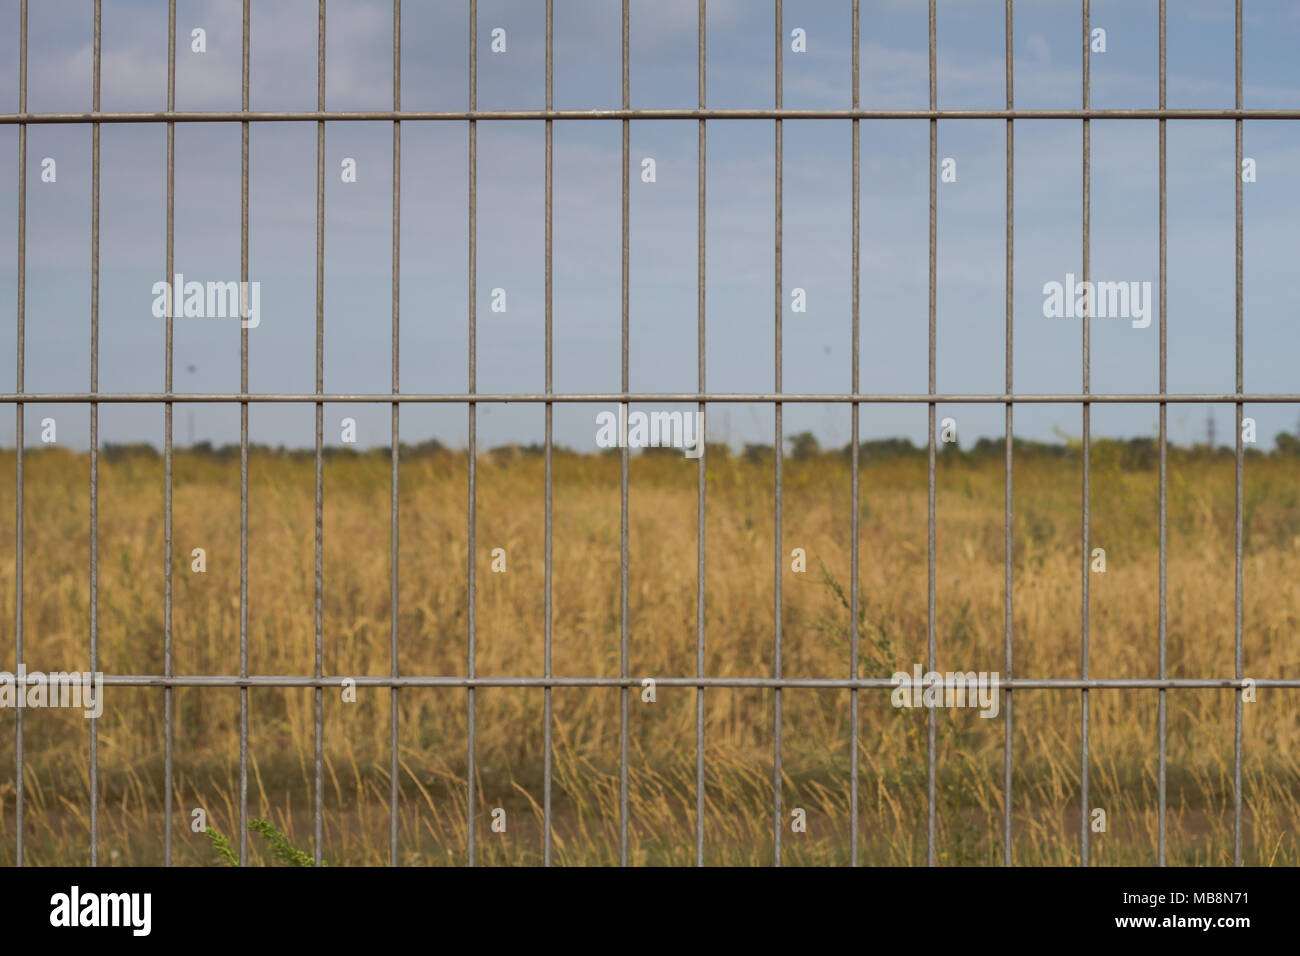 close up picture of cage fence against blue sky Stock Photo